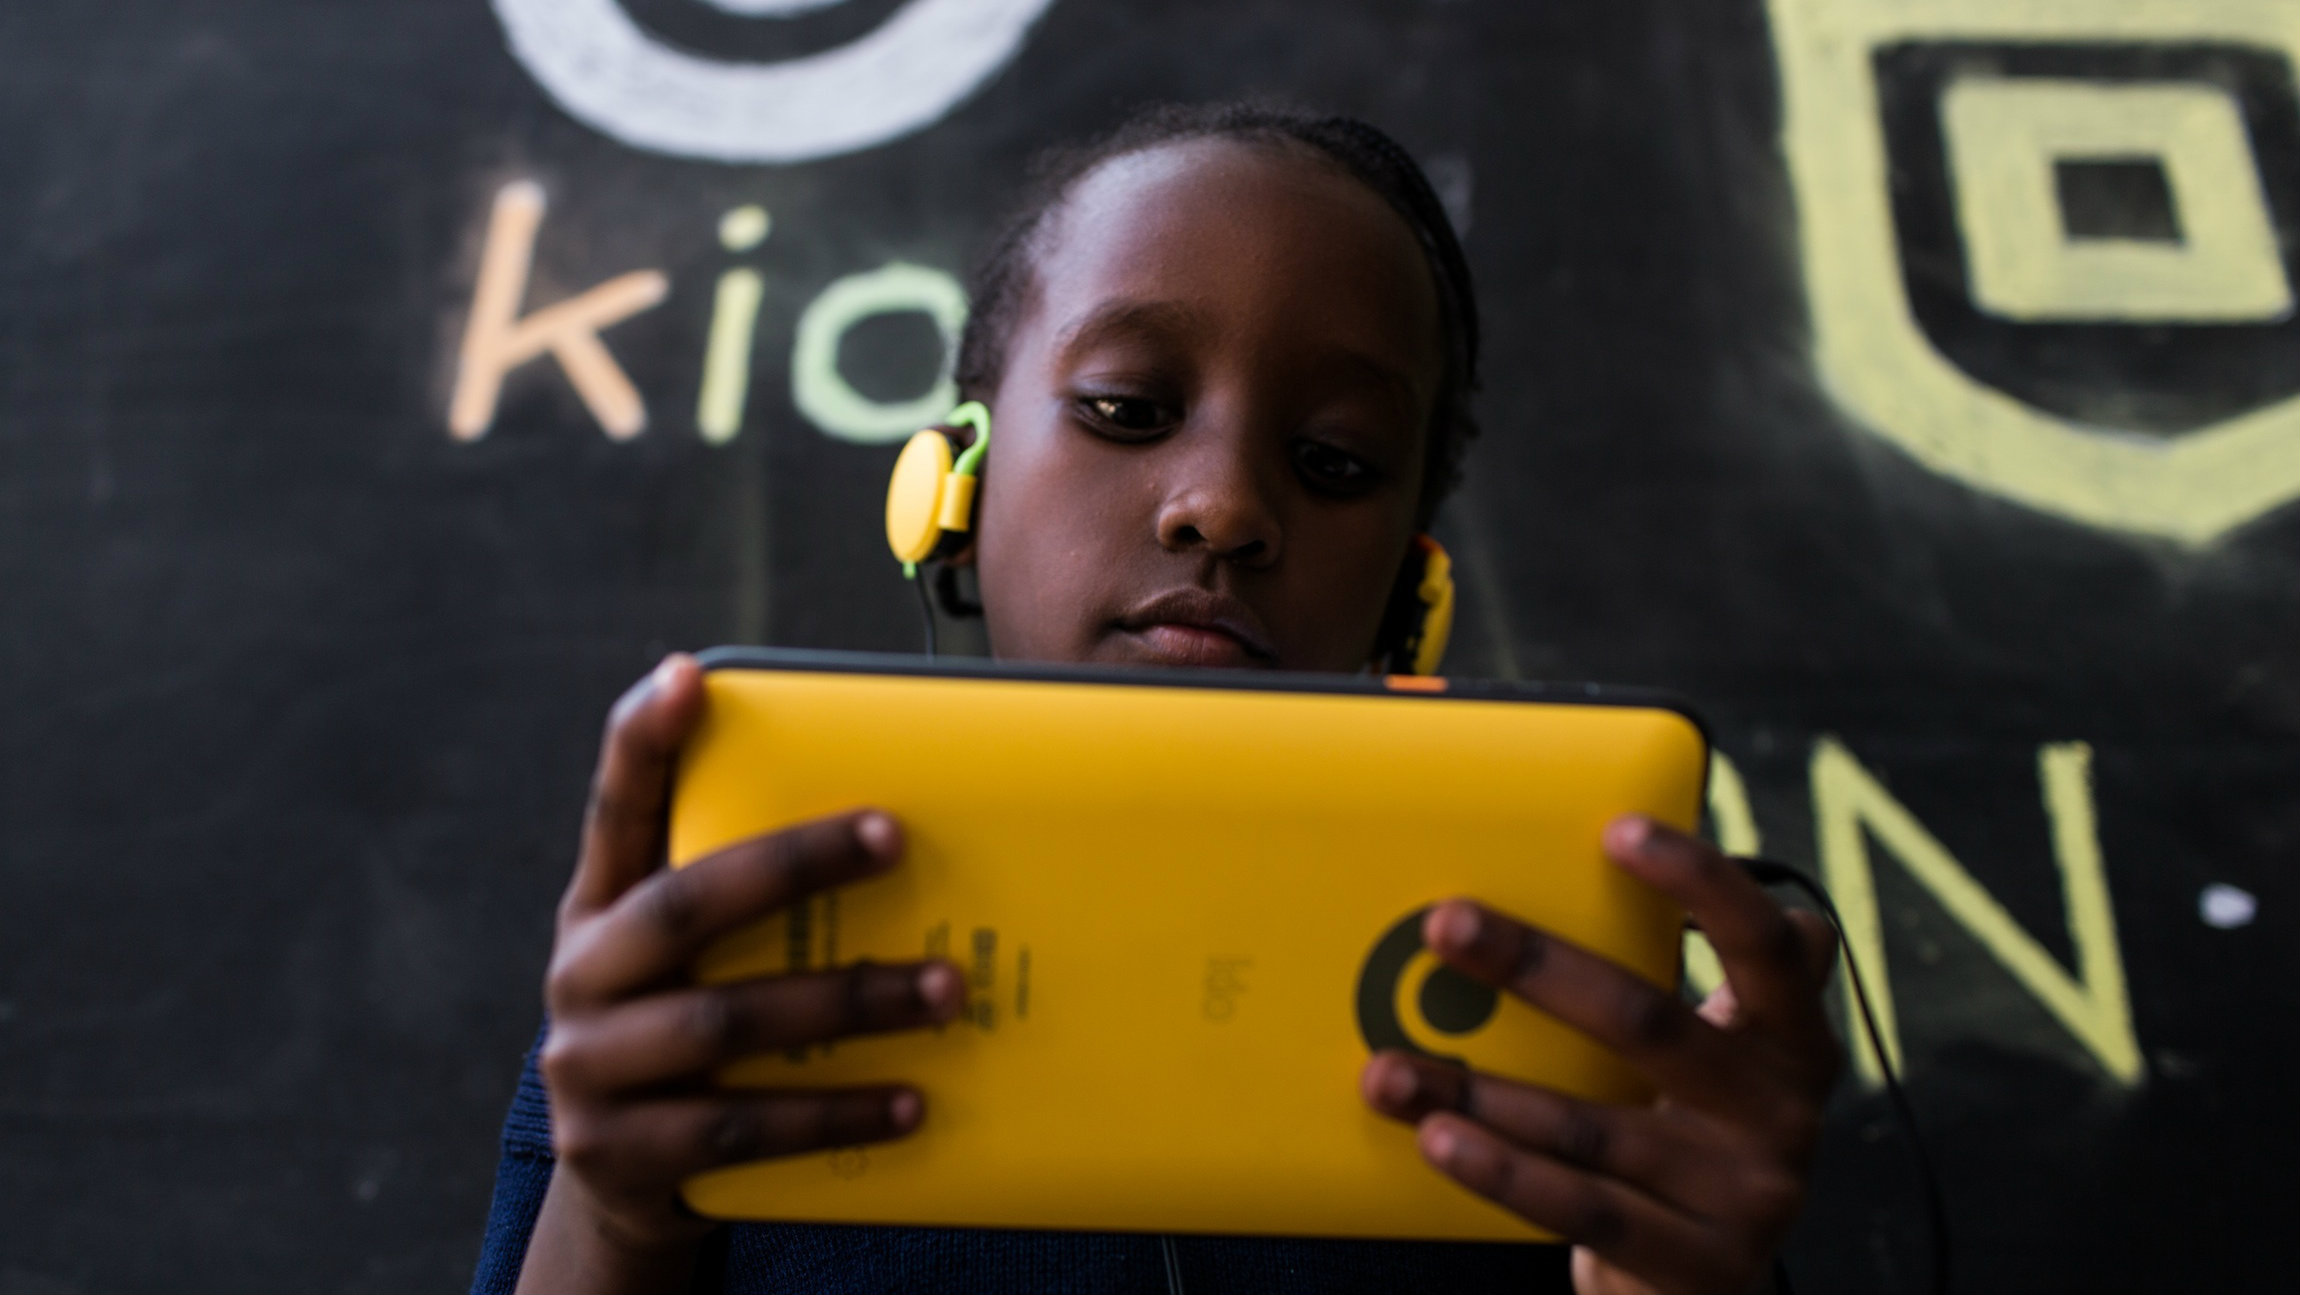 A student plays with the Kio, a tablet made by BRCK Education